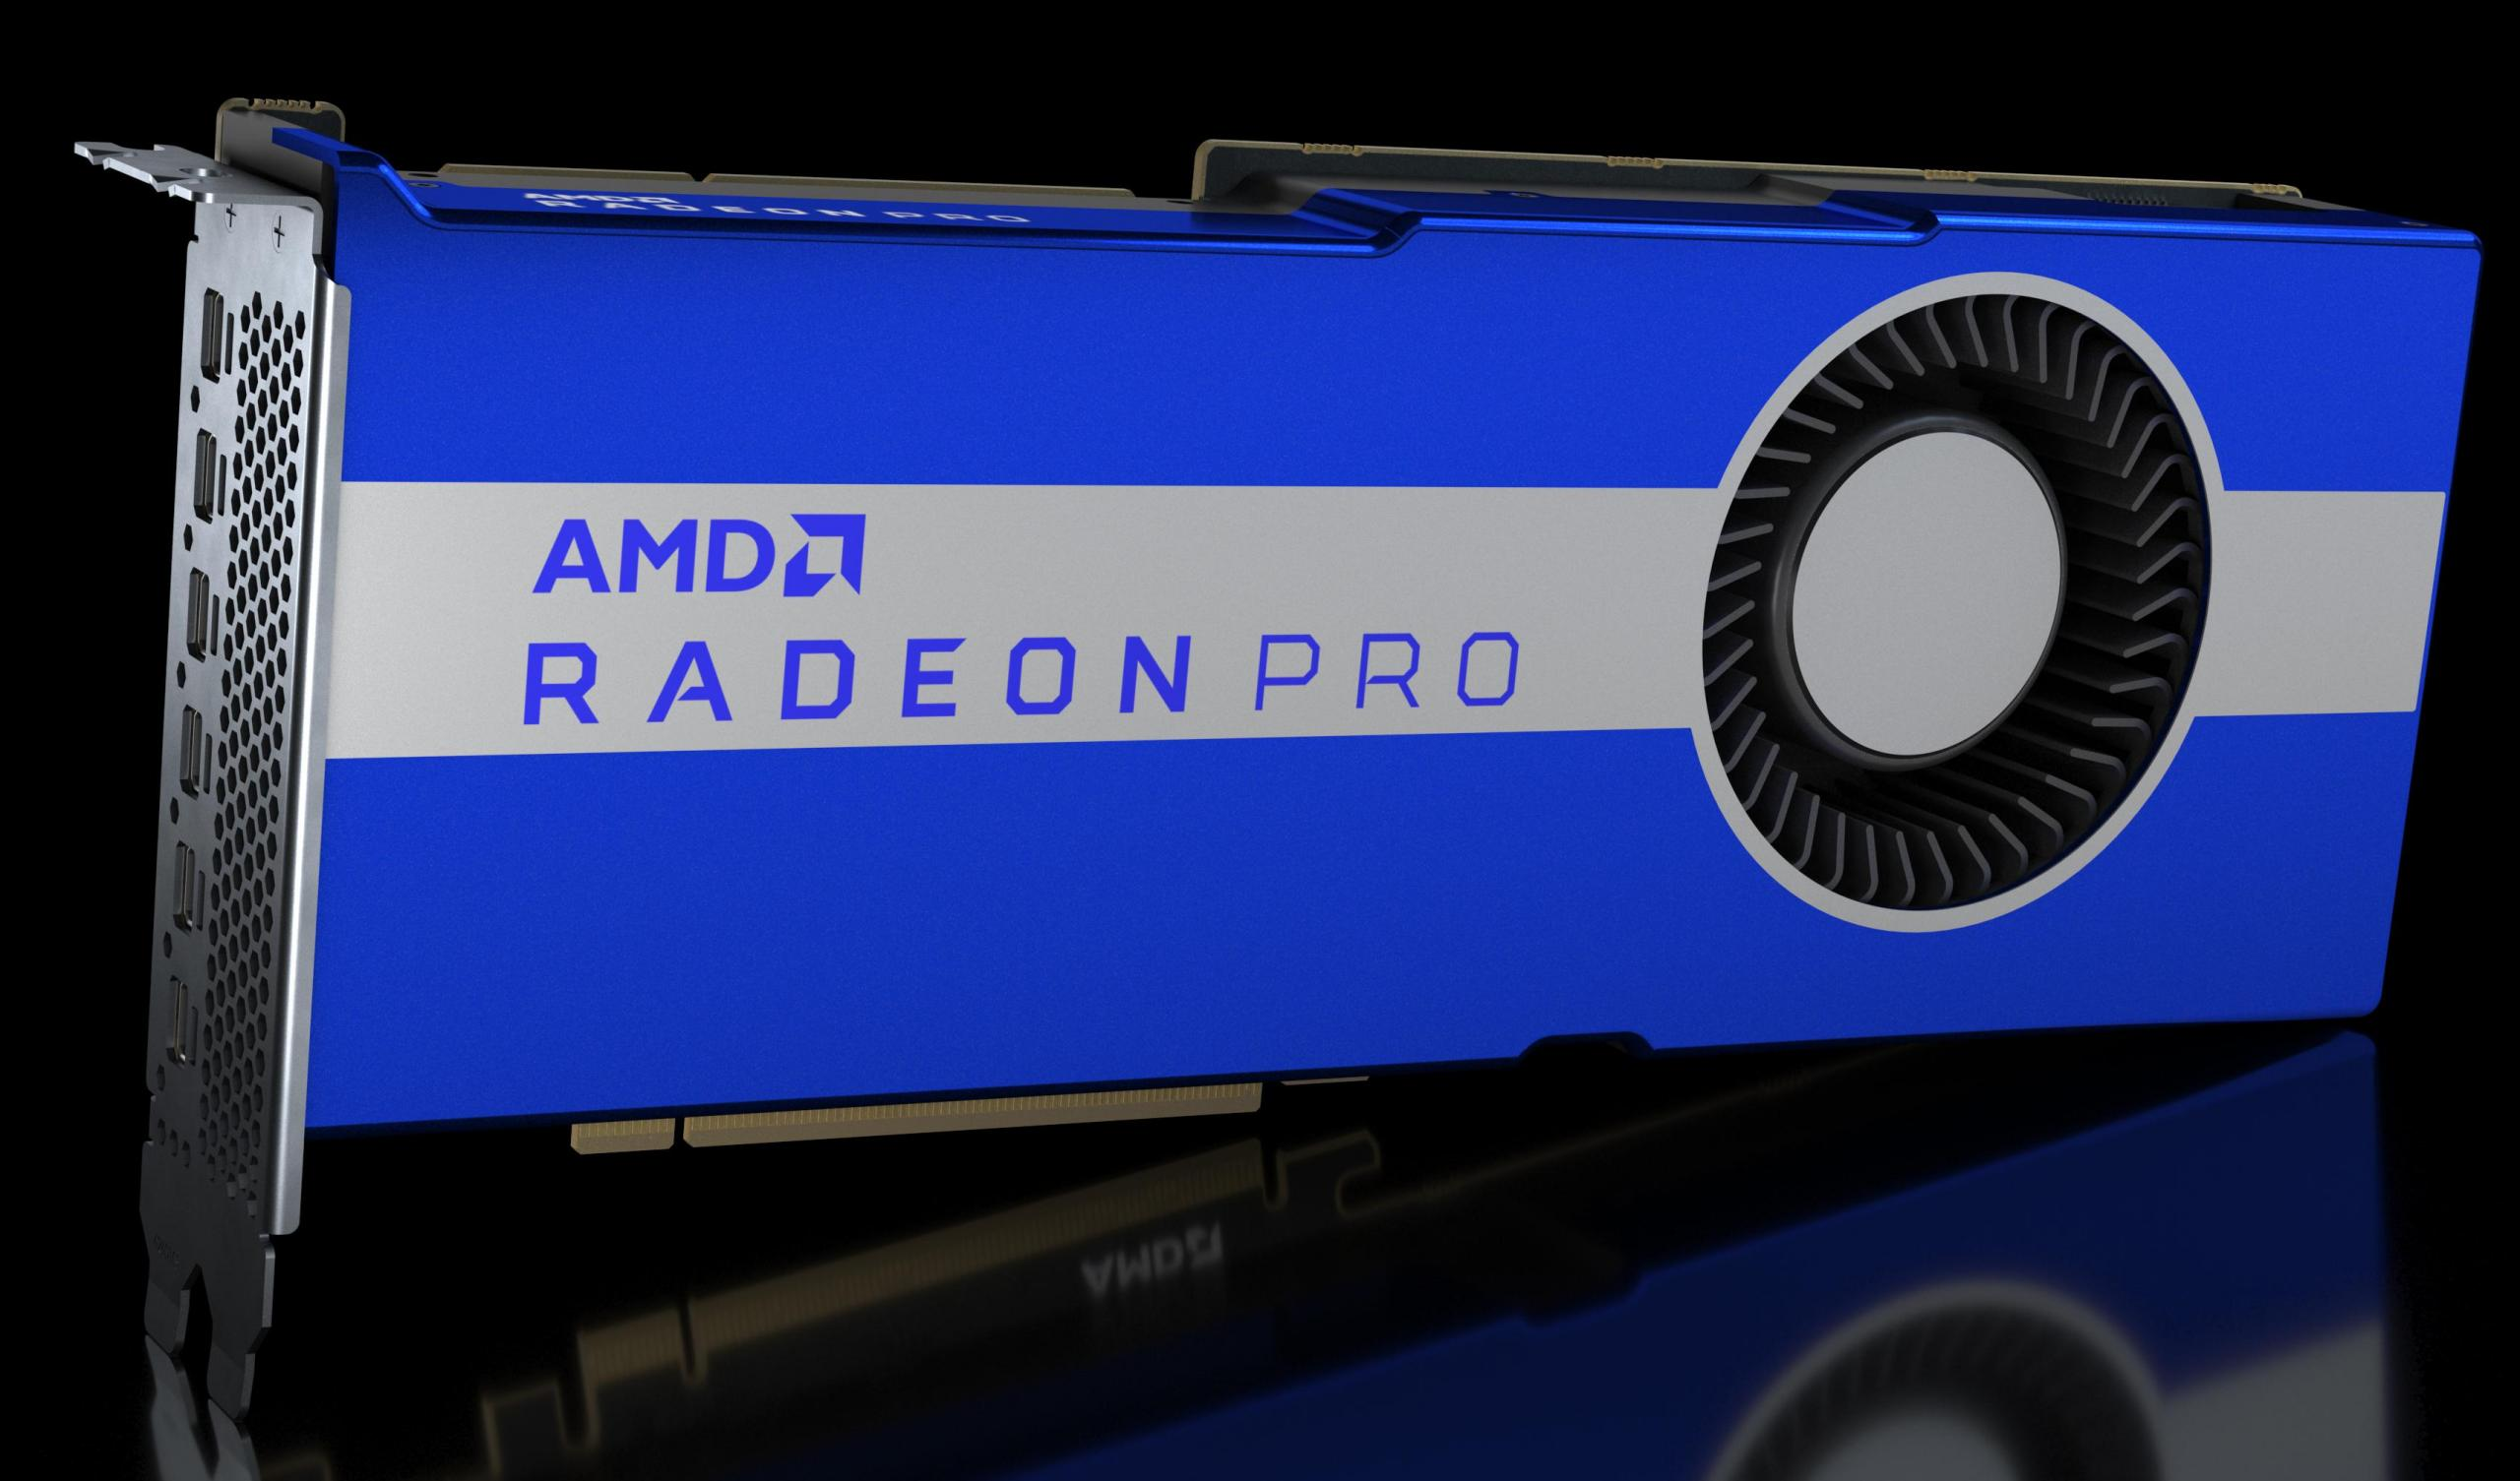 AMD Radeon Pro VII as workstation graphics card: the interesting revival of Radeon VII